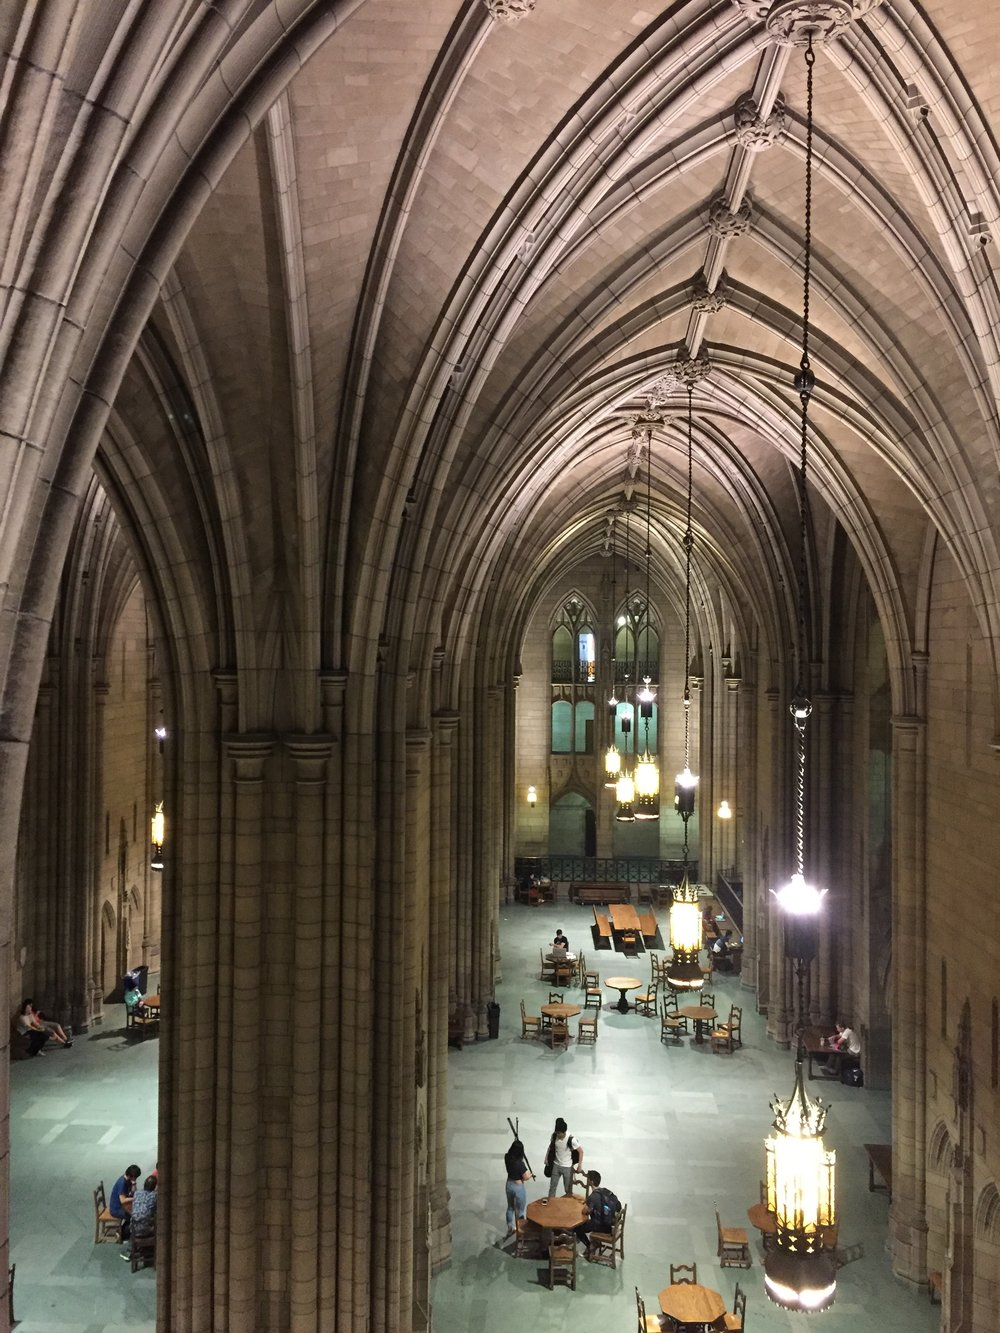 Interior of the Cathedral of Learning